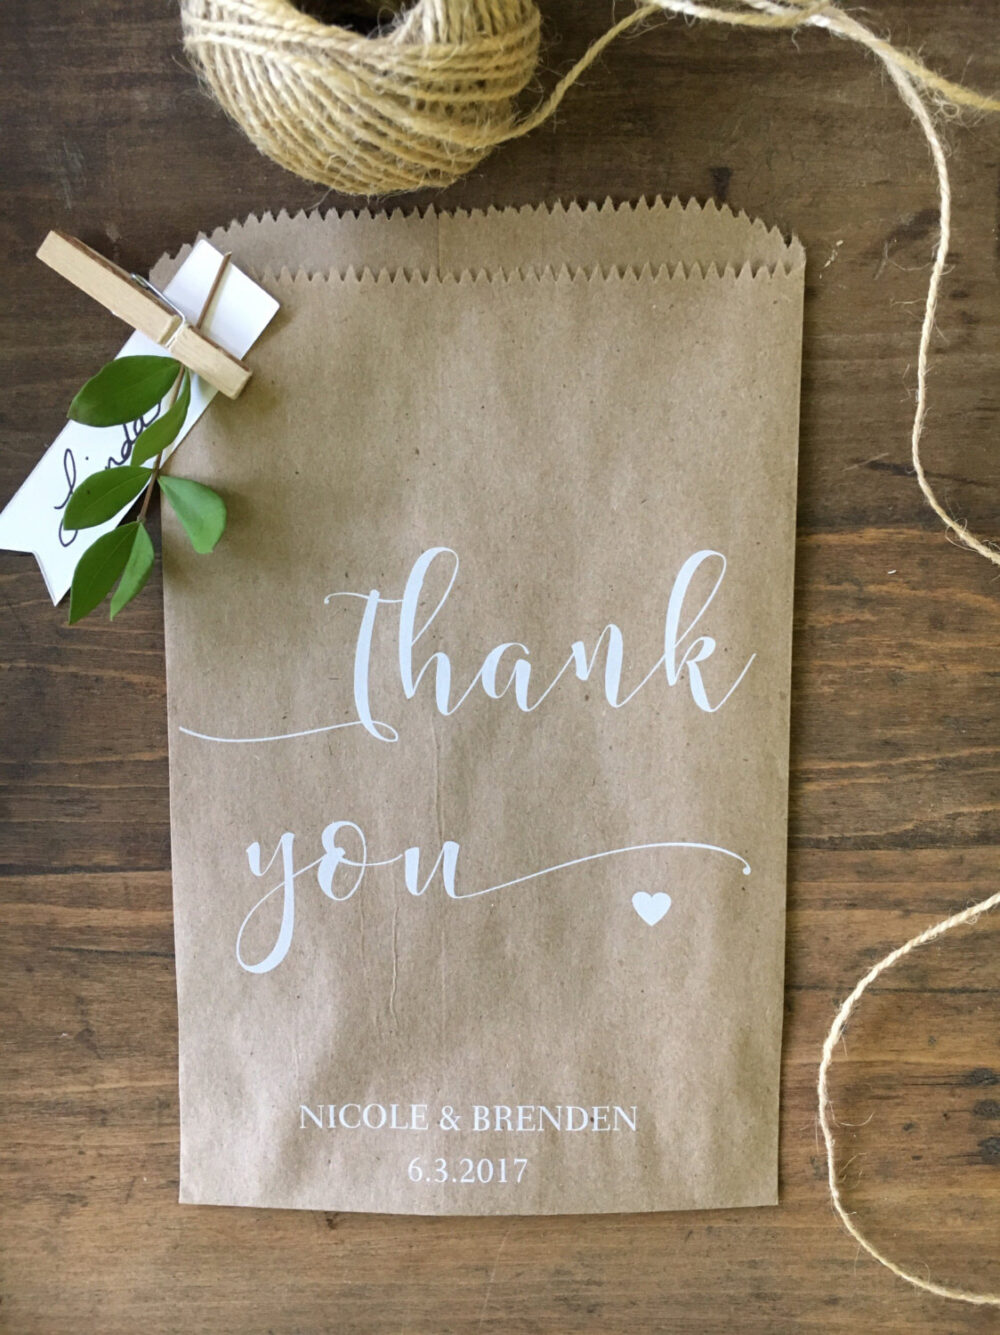 Wedding Cookie Bags, Thank You Rustic Candy Buffet Sacks, Custom Favors, Recycled Brown Paper Personalized Printed Sack